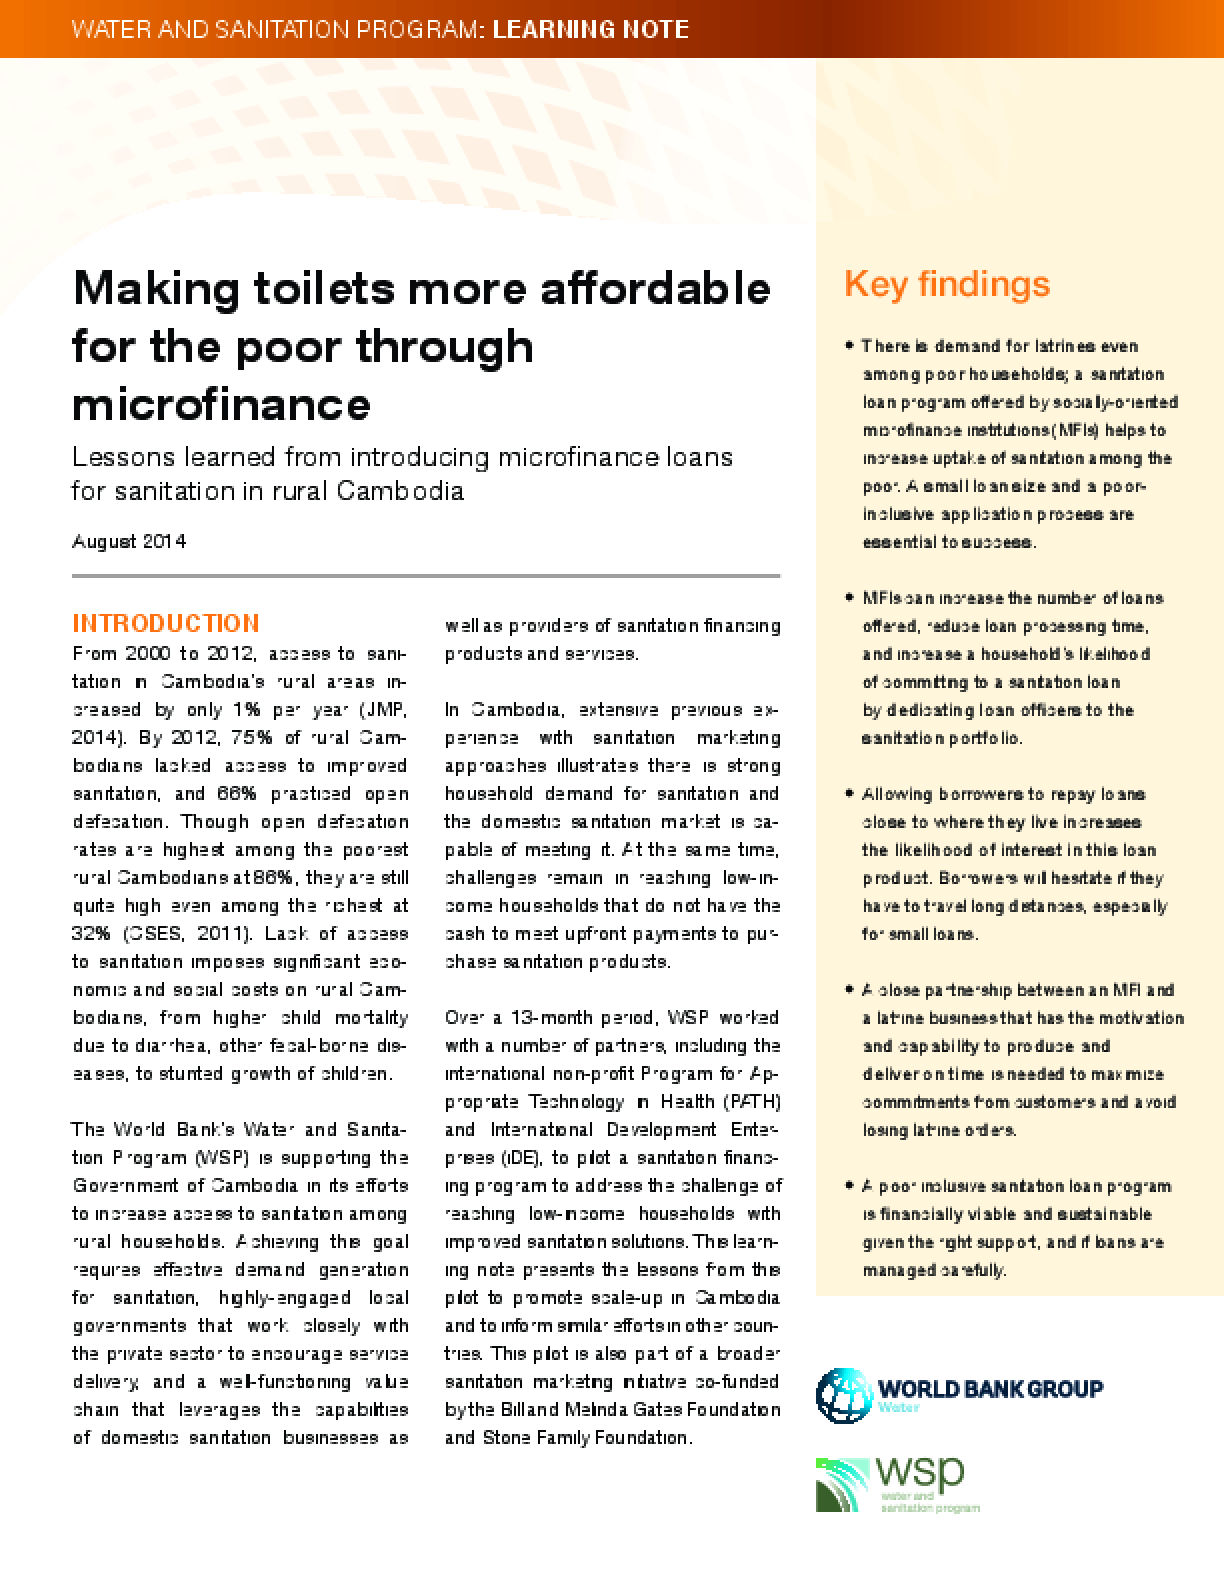 Making Toilets More Affordable for the Poor Through Microfinance